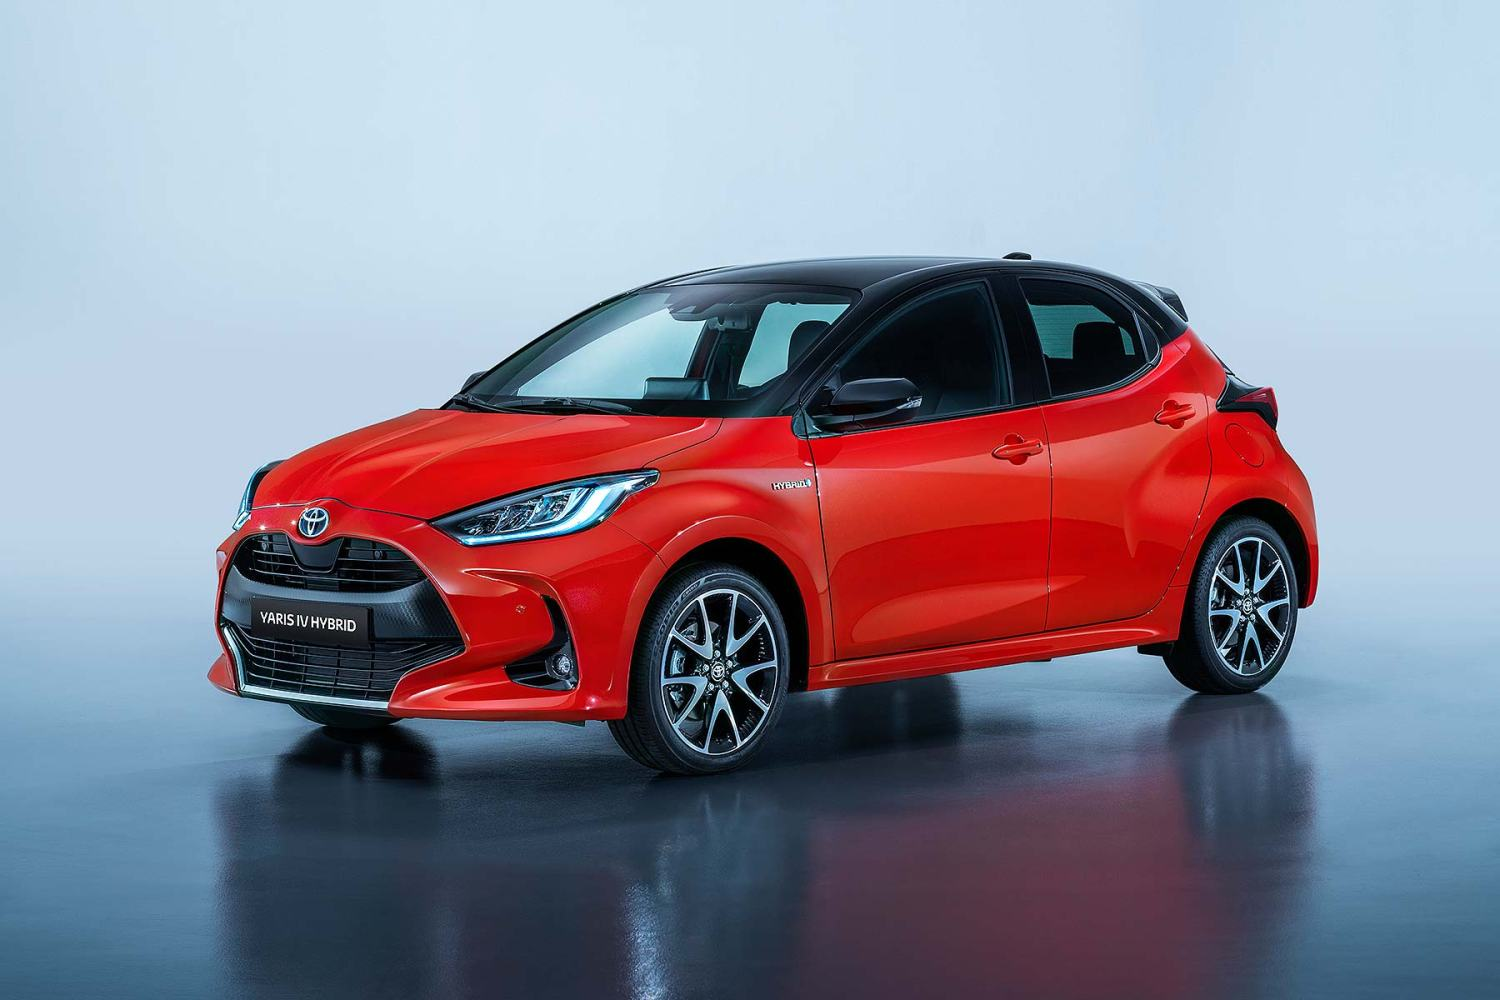 2020 Toyota Yaris Ia Review.New Toyota Yaris Revealed Bold New Look For 2020 Is Not